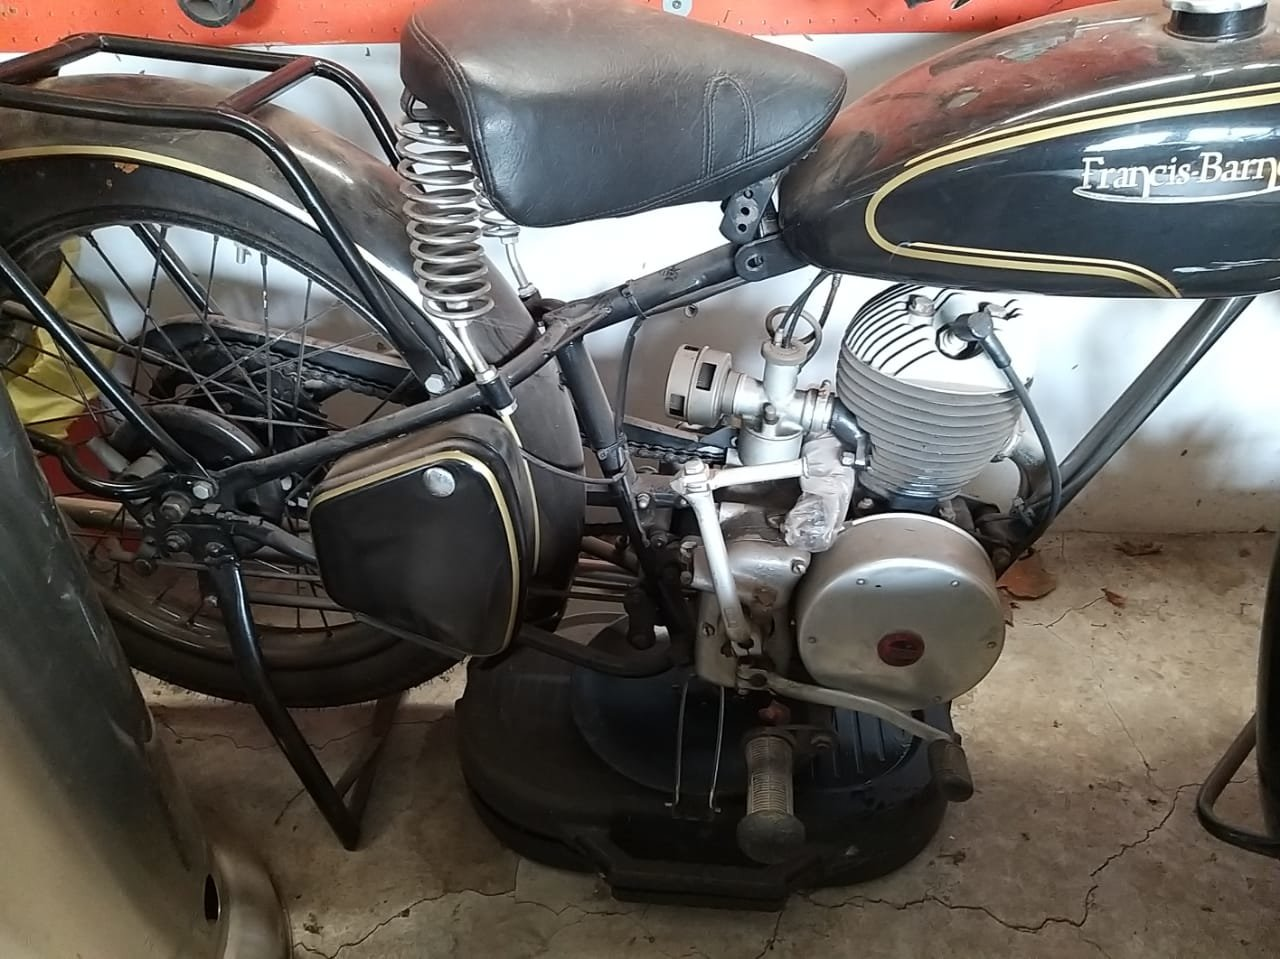 1952 Francis Barnett Motorcycle For Sale (picture 5 of 6)